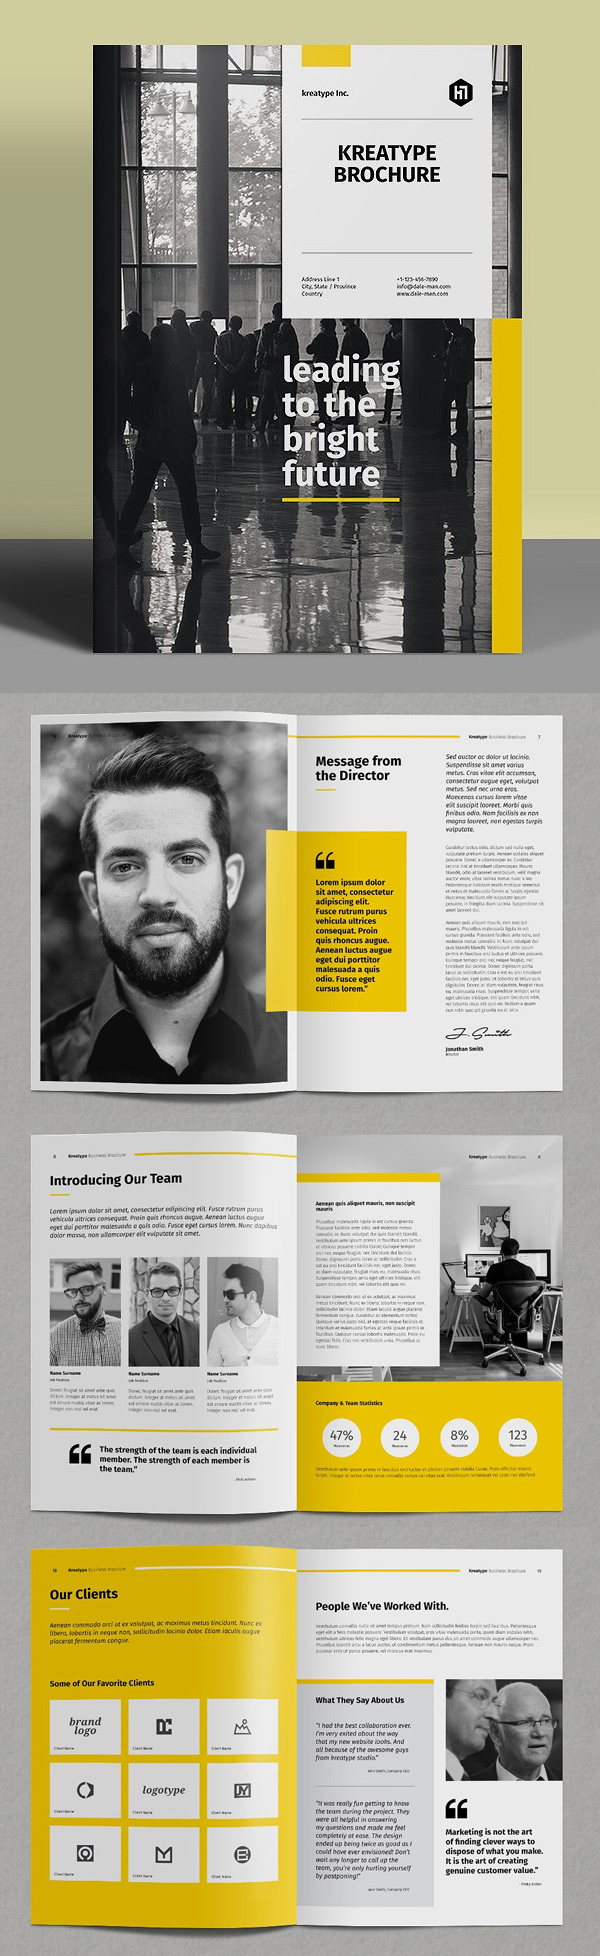 100 Professional Corporate Brochure Templates - 31